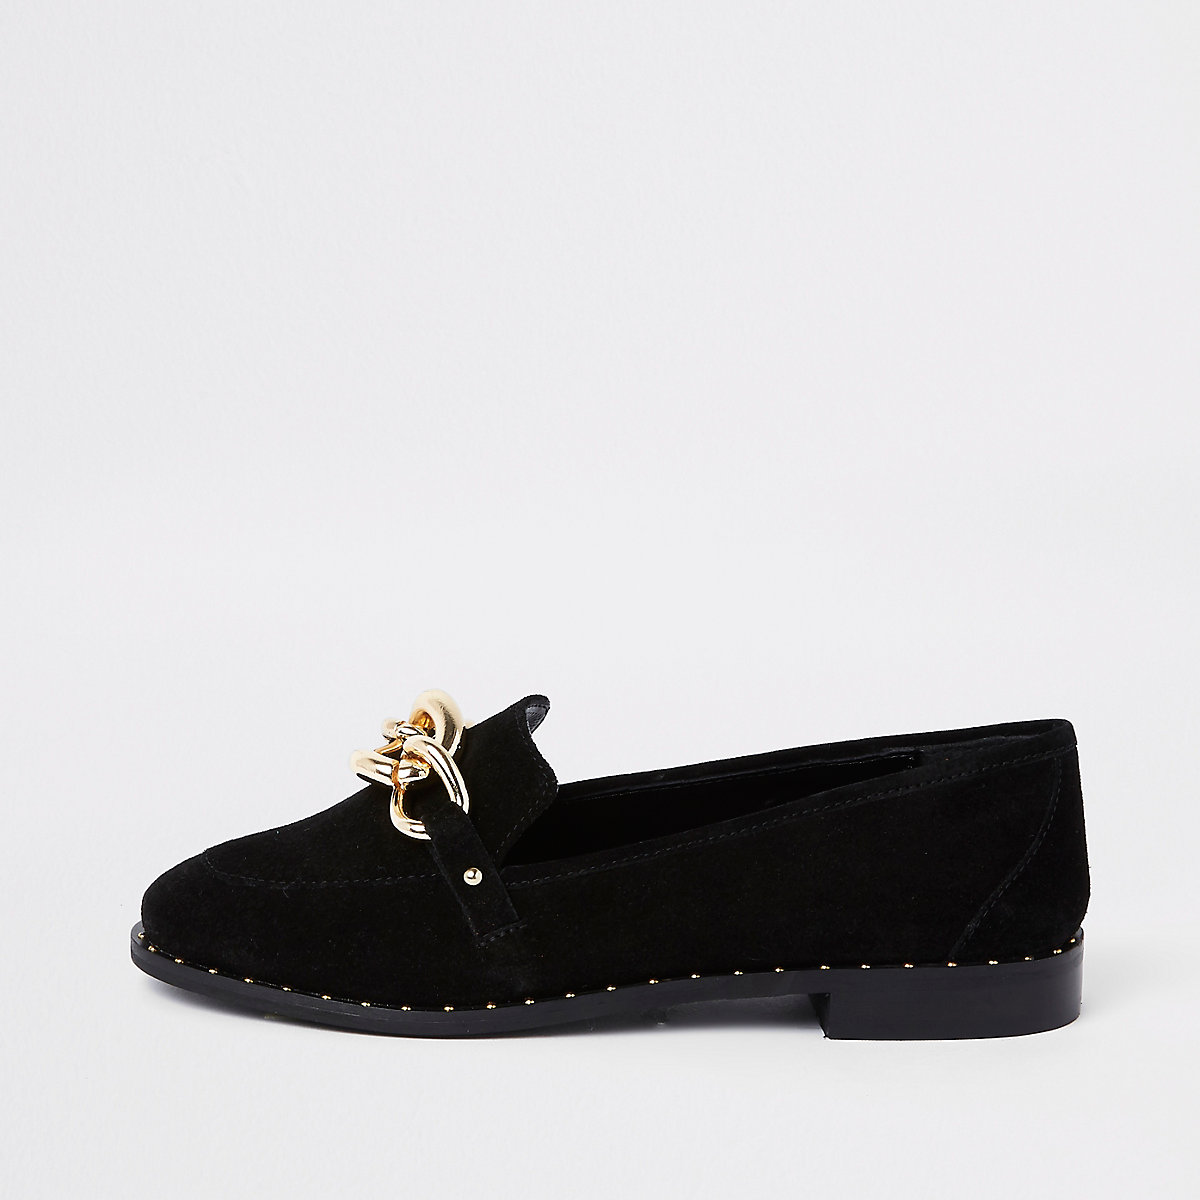 Black suede gold tone chain loafers